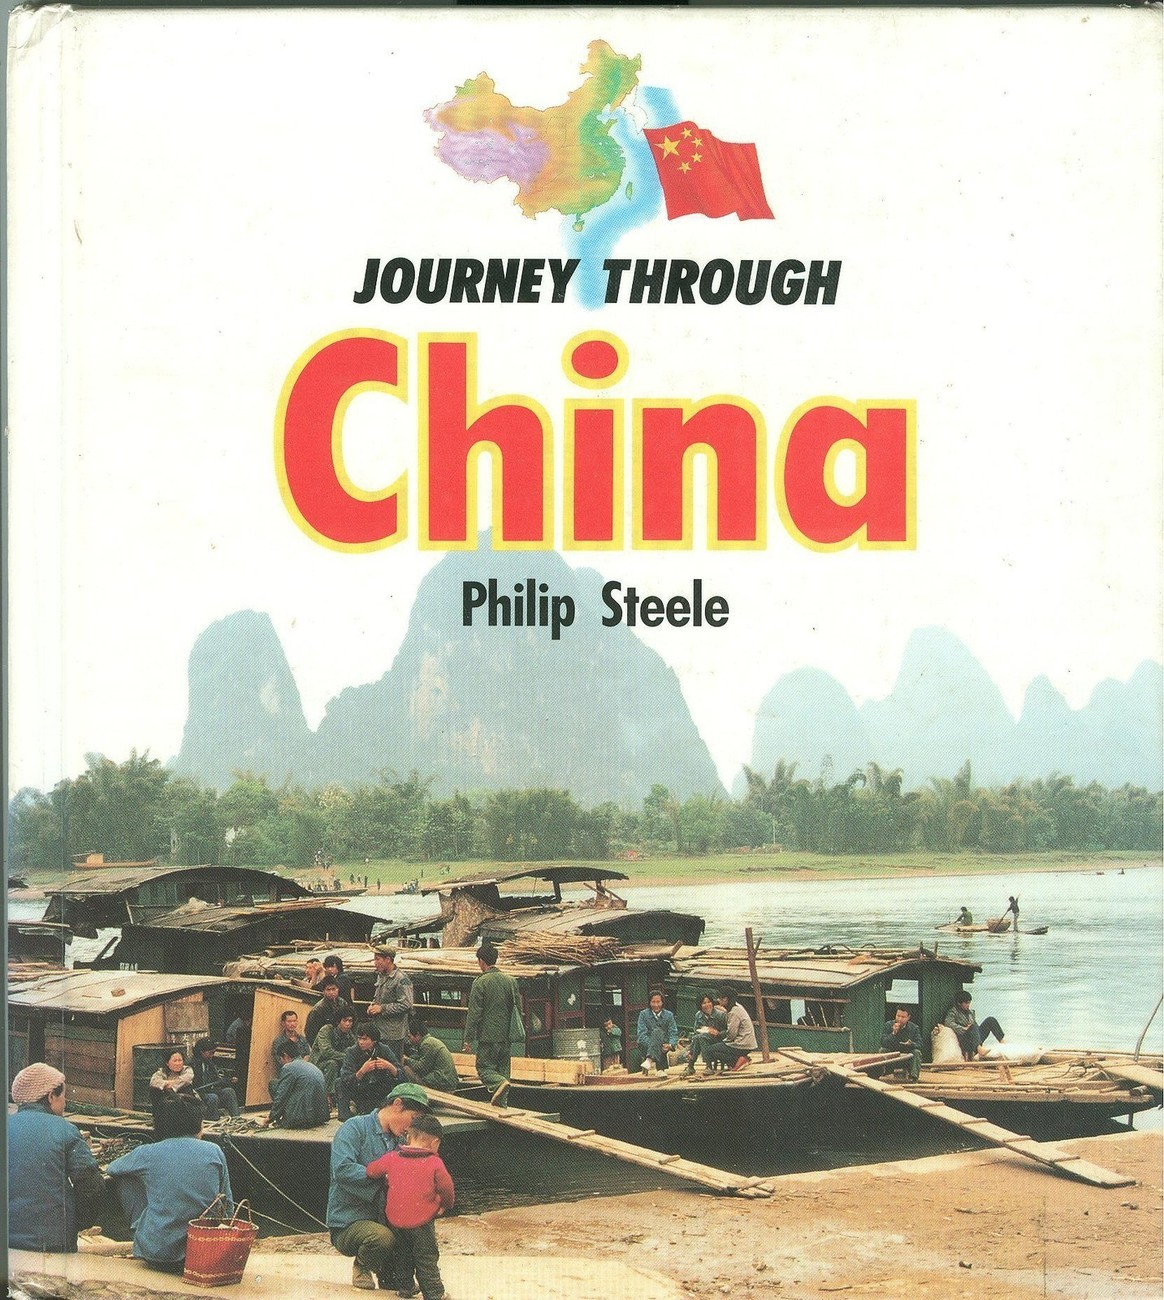 Journey Through China by Philip Steele-Facts on Population;Language;Calendar;HC